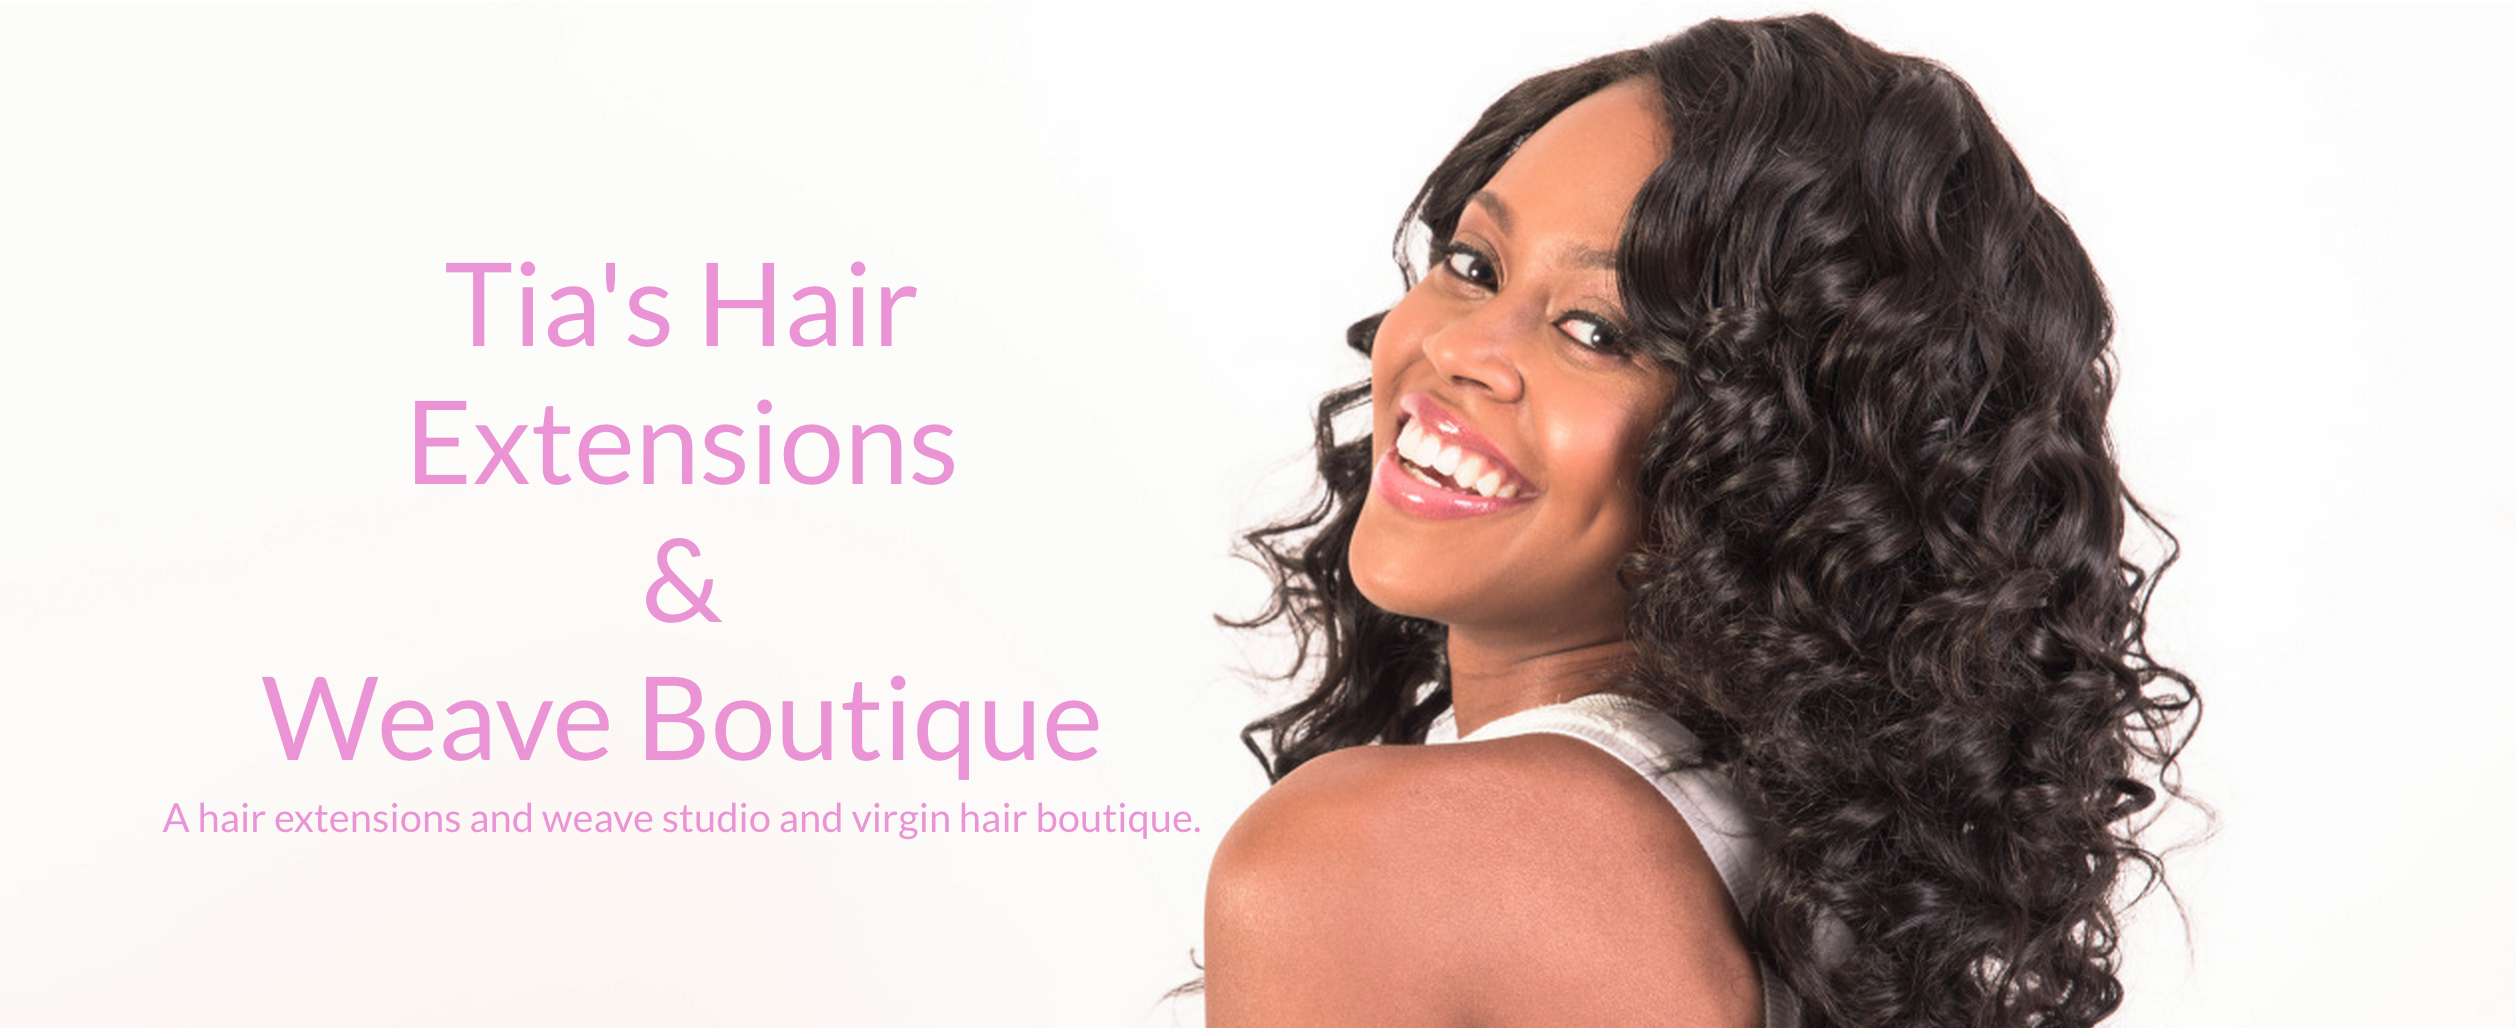 Tias Hair Extensions And Weave Boutique 3660 Canton Rd Ste 140